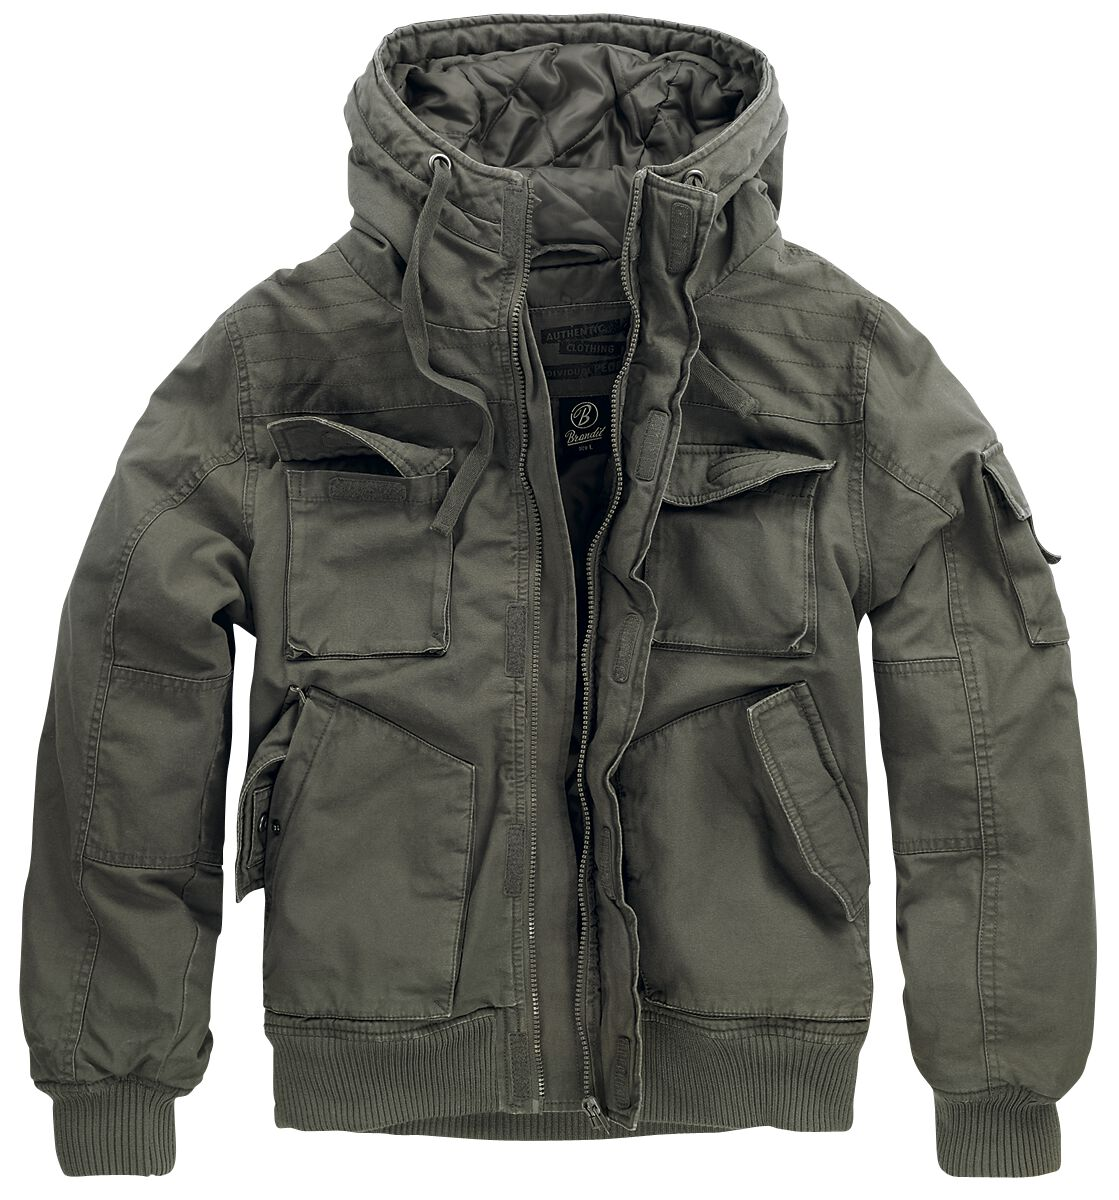 db92d6666 Brandit. Bronx. Winter Jacket. 2 Reviews